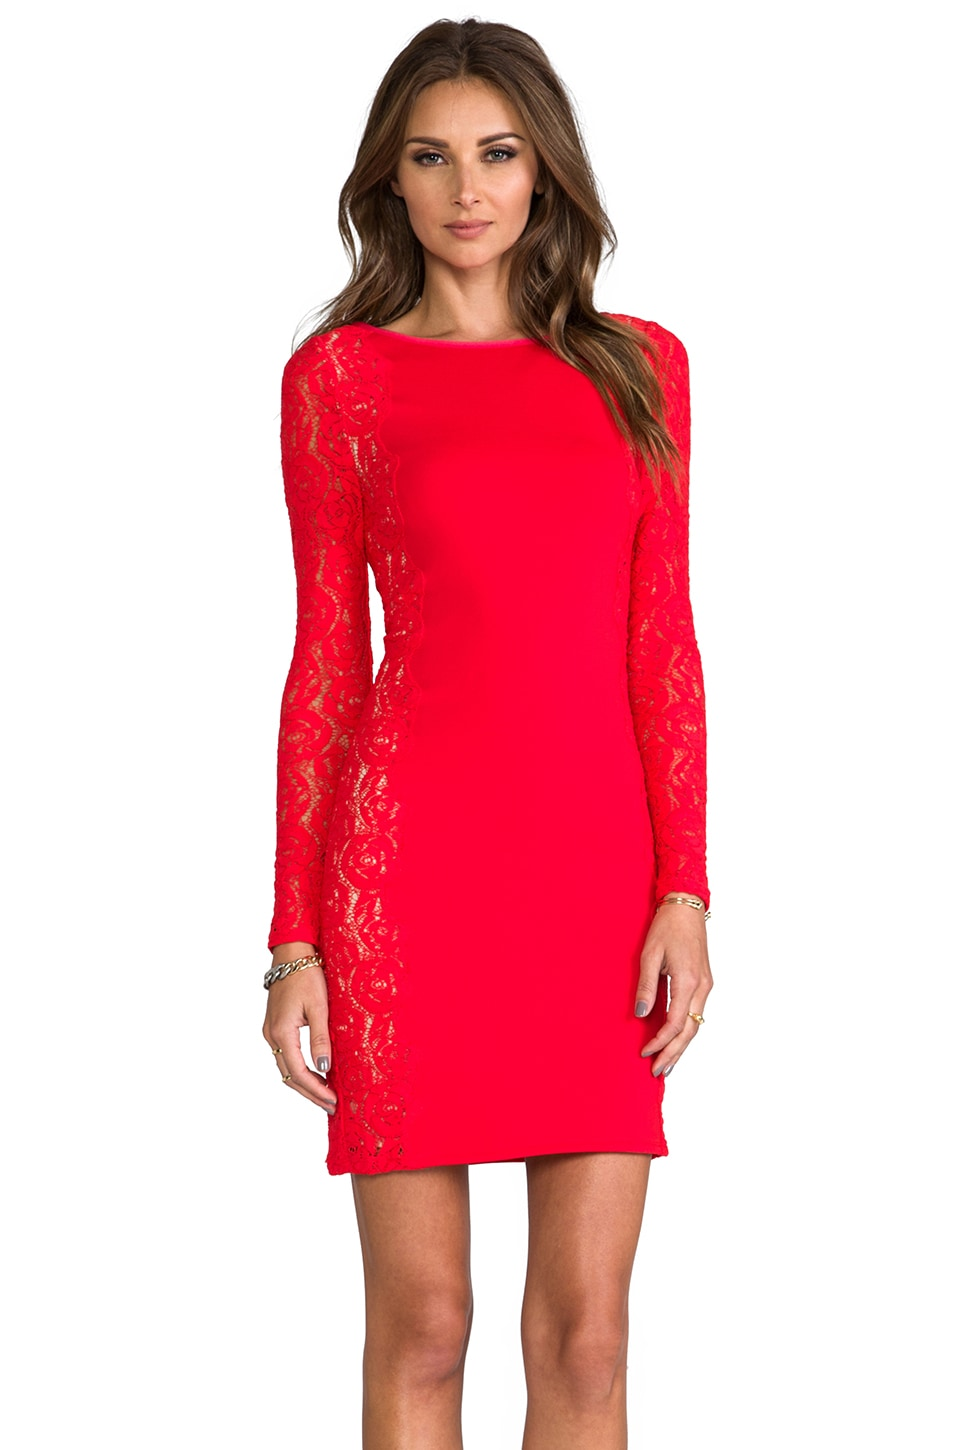 Tracy Reese Sheath Dress with Lace in Scarlet